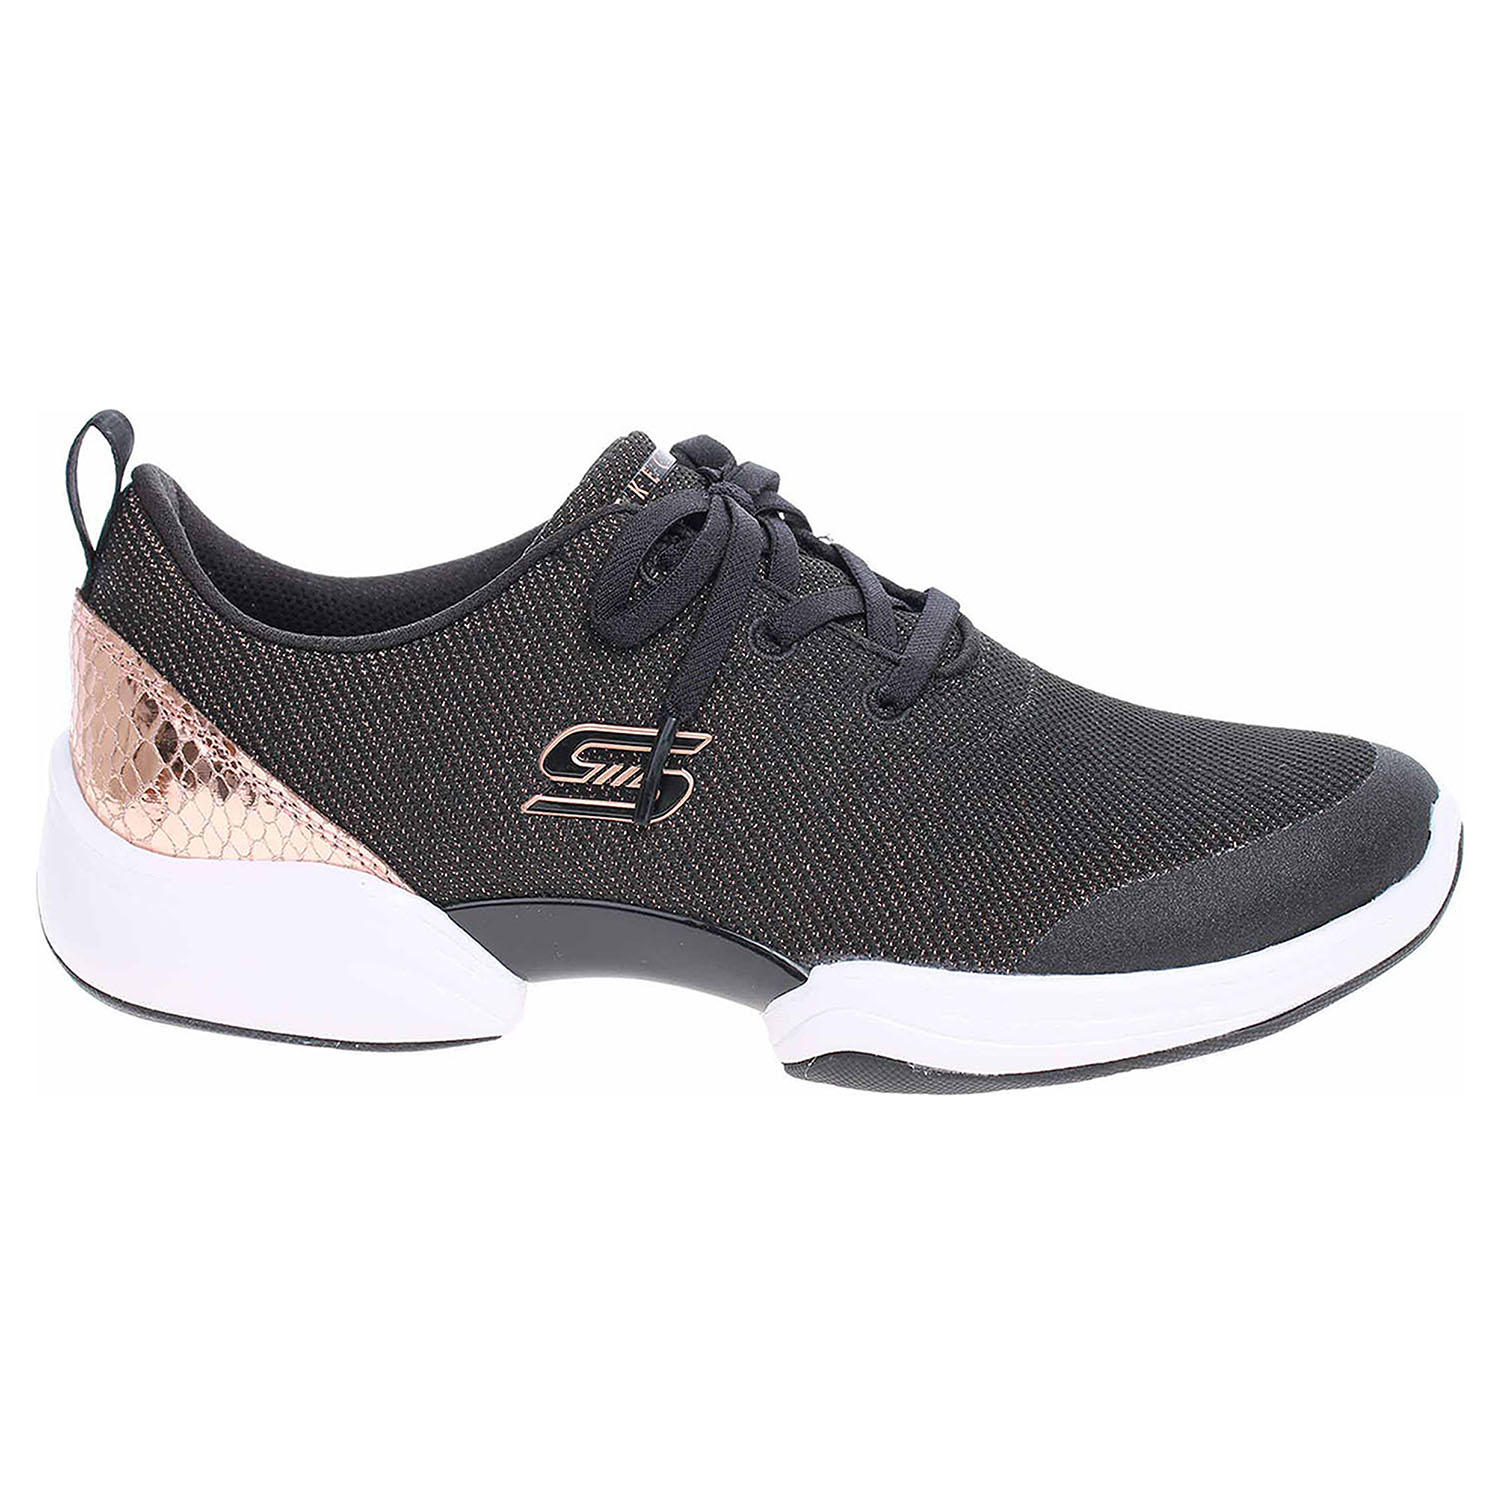 Skechers Skech-Lab - Snazzy Spirit black-rose gold 23389 BKRG 39